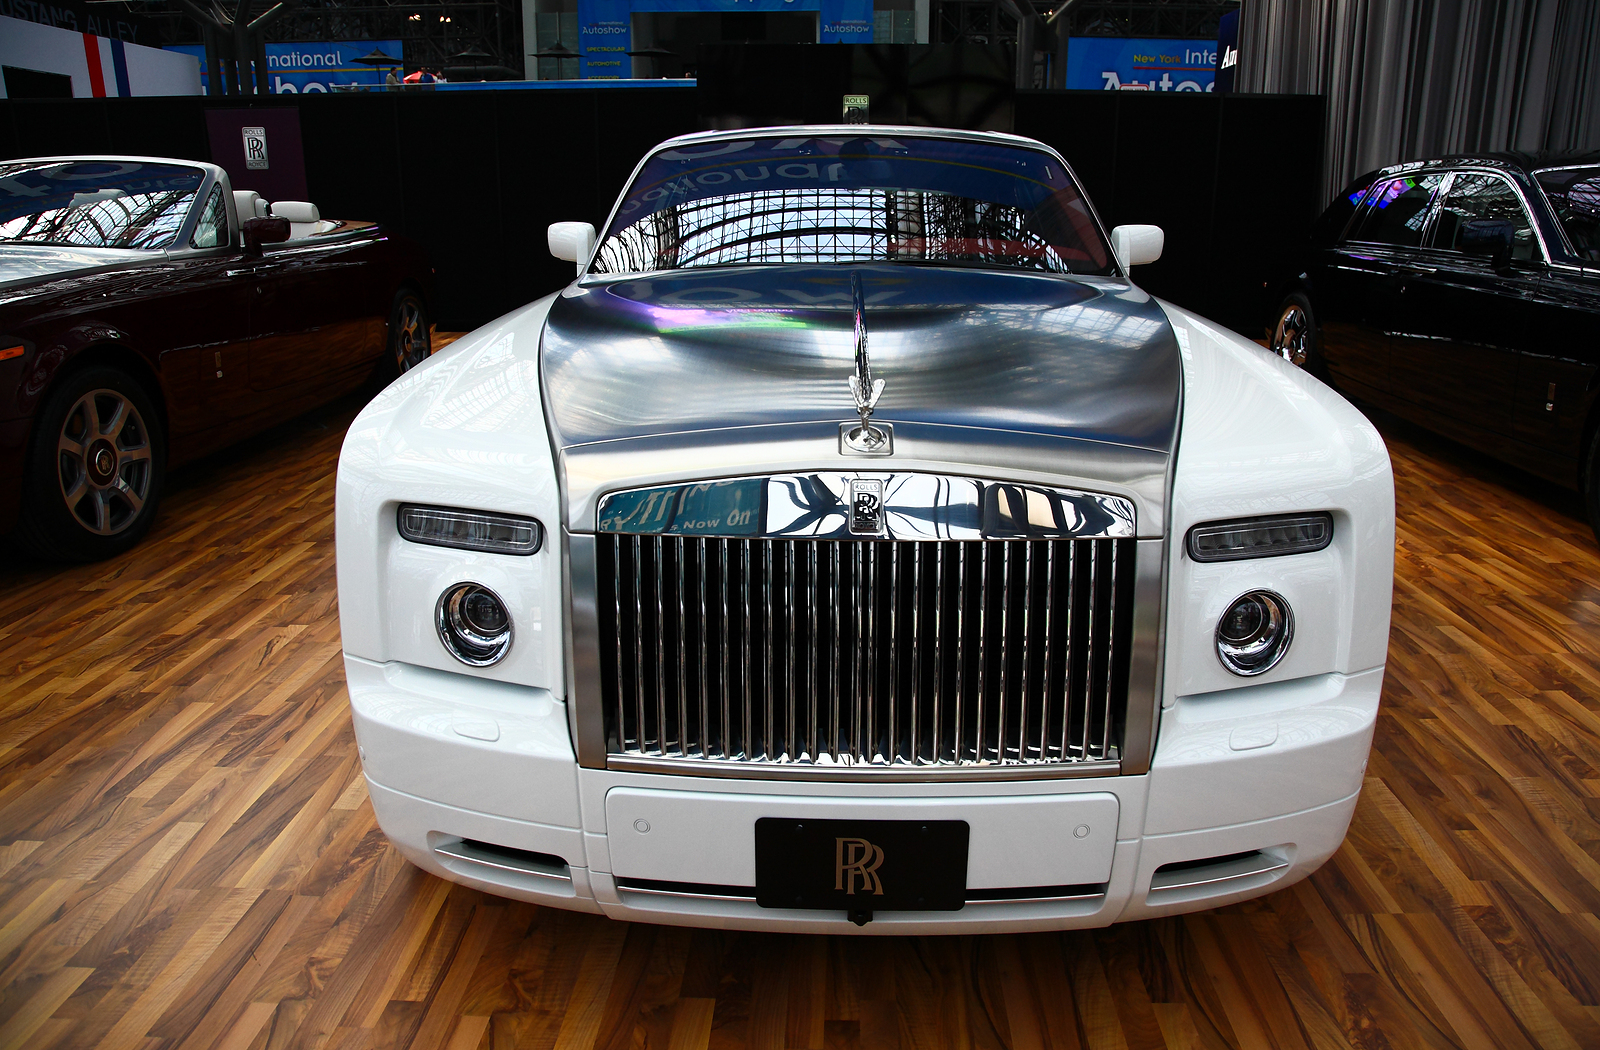 5 Unmistakable Signs of a Luxury Car